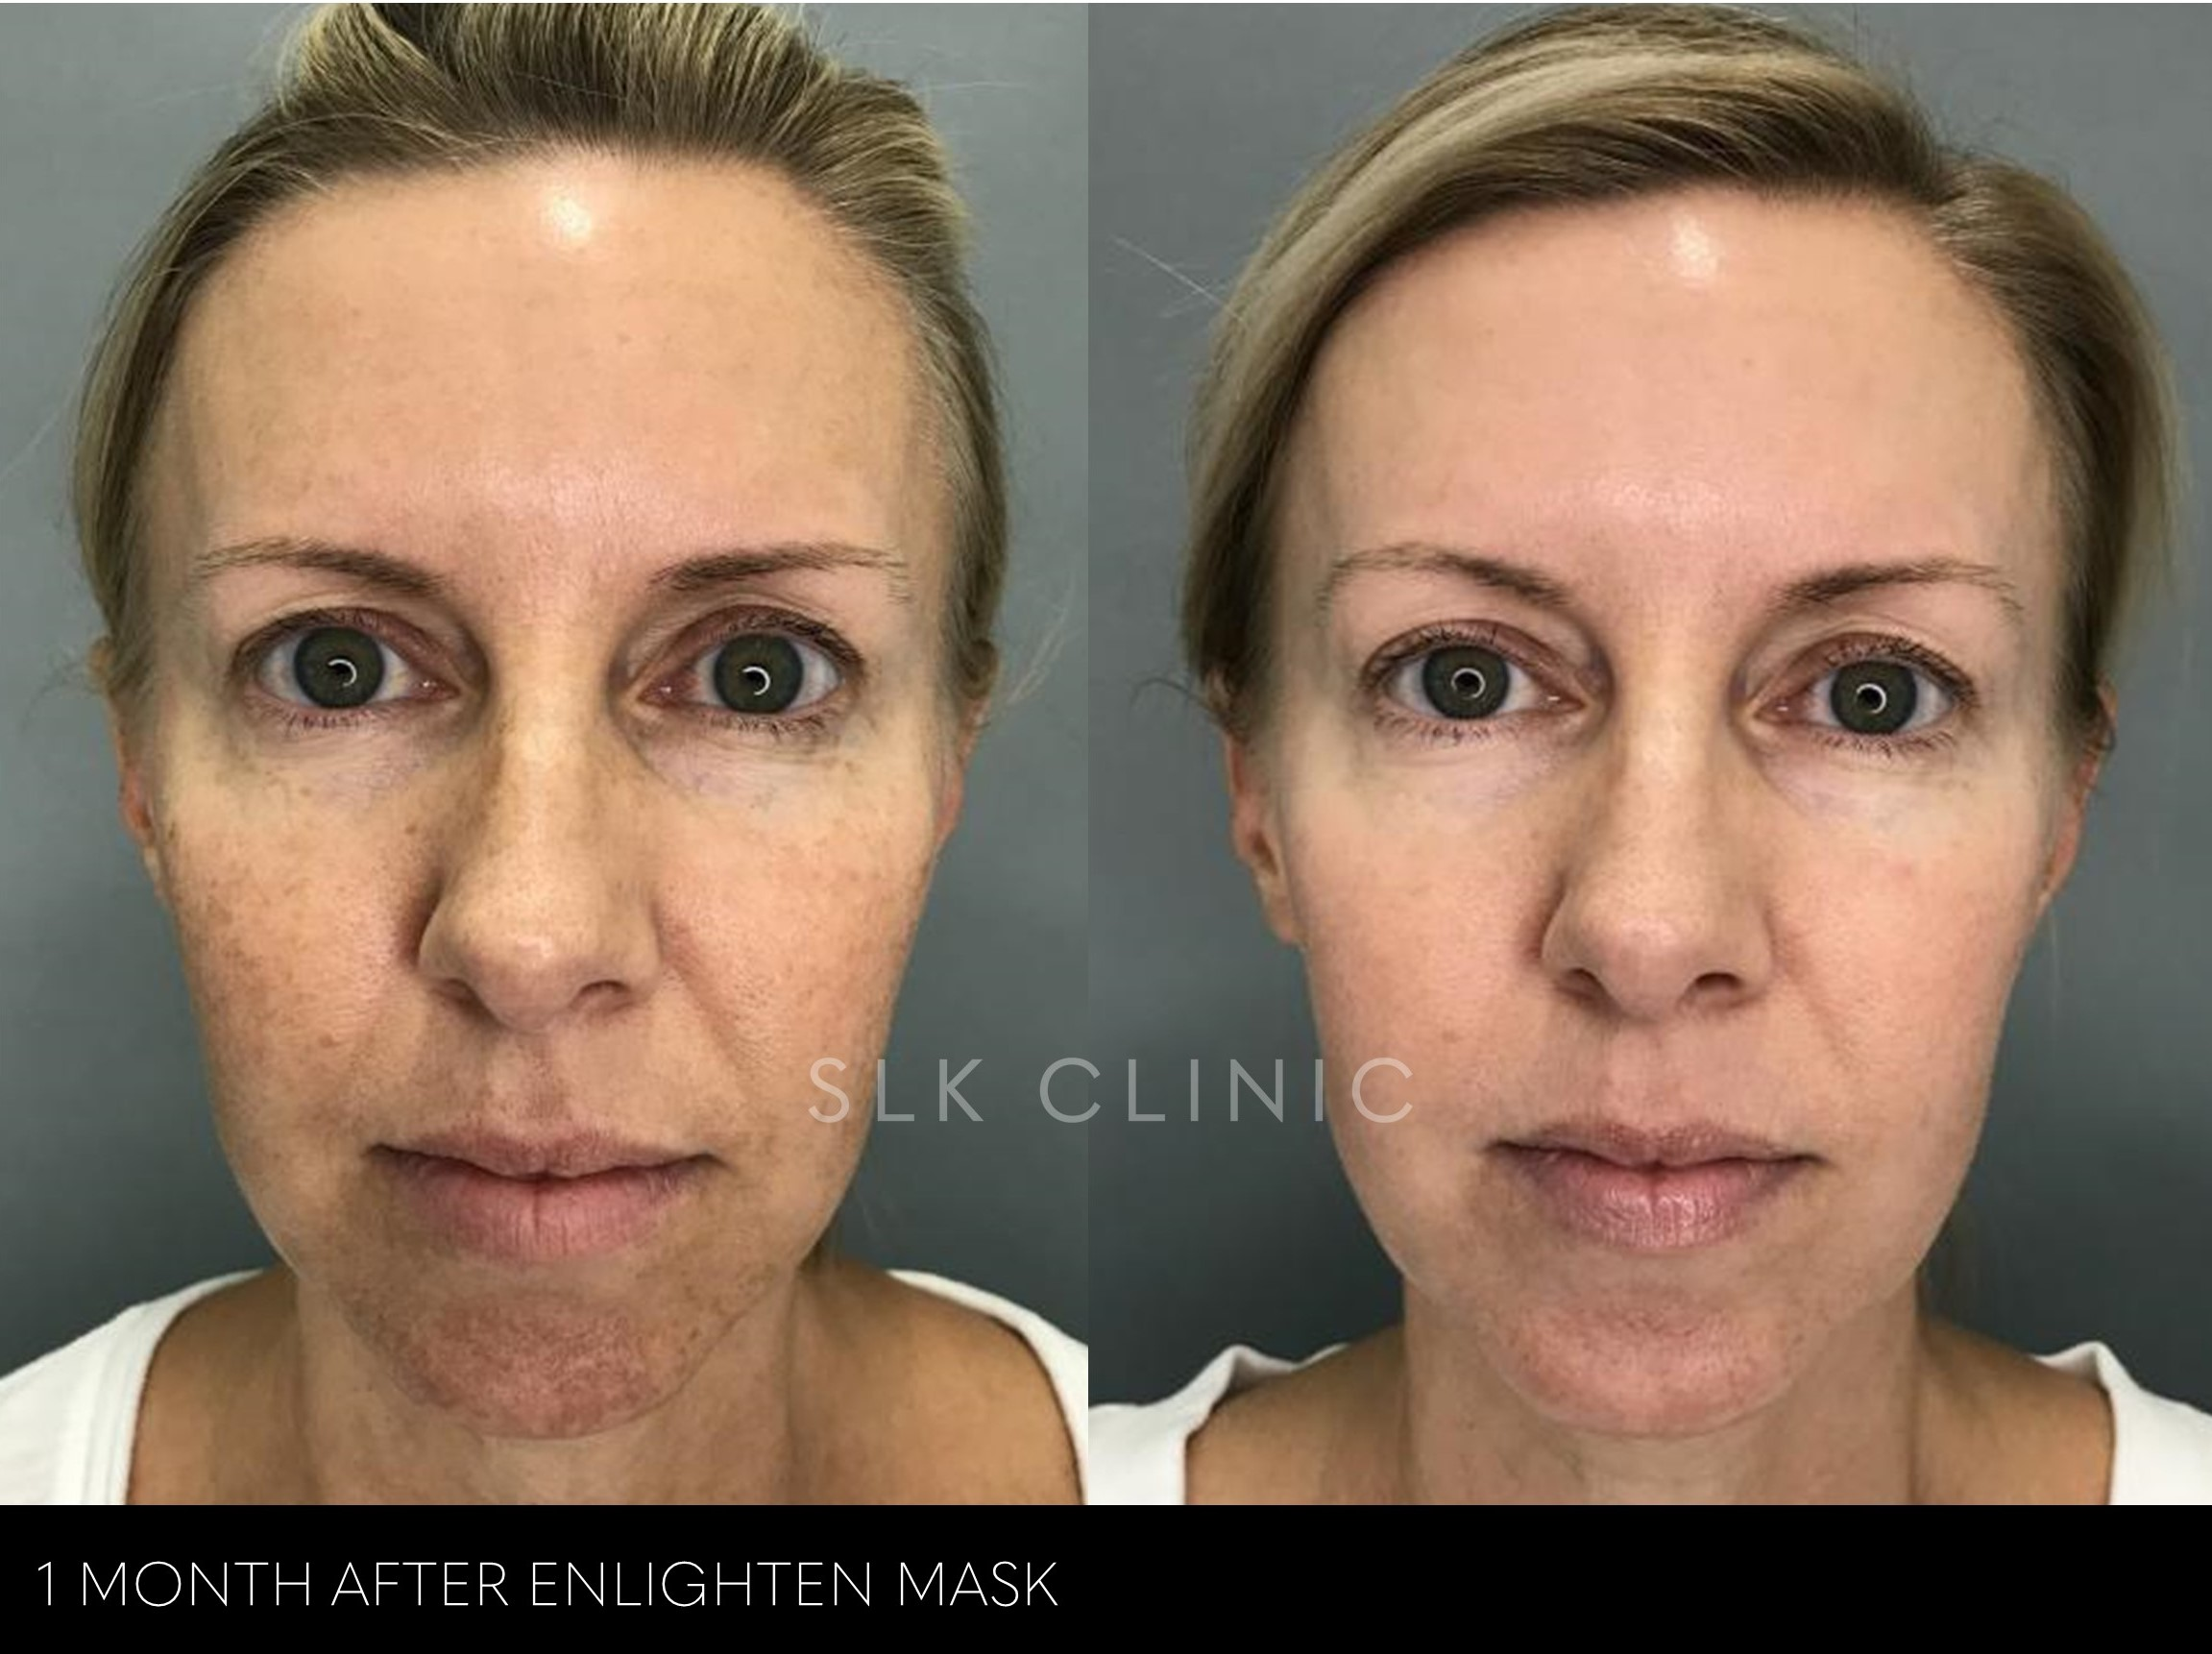 before and after photos of one revepeel enlighten mask for face hyperpigmentation removal